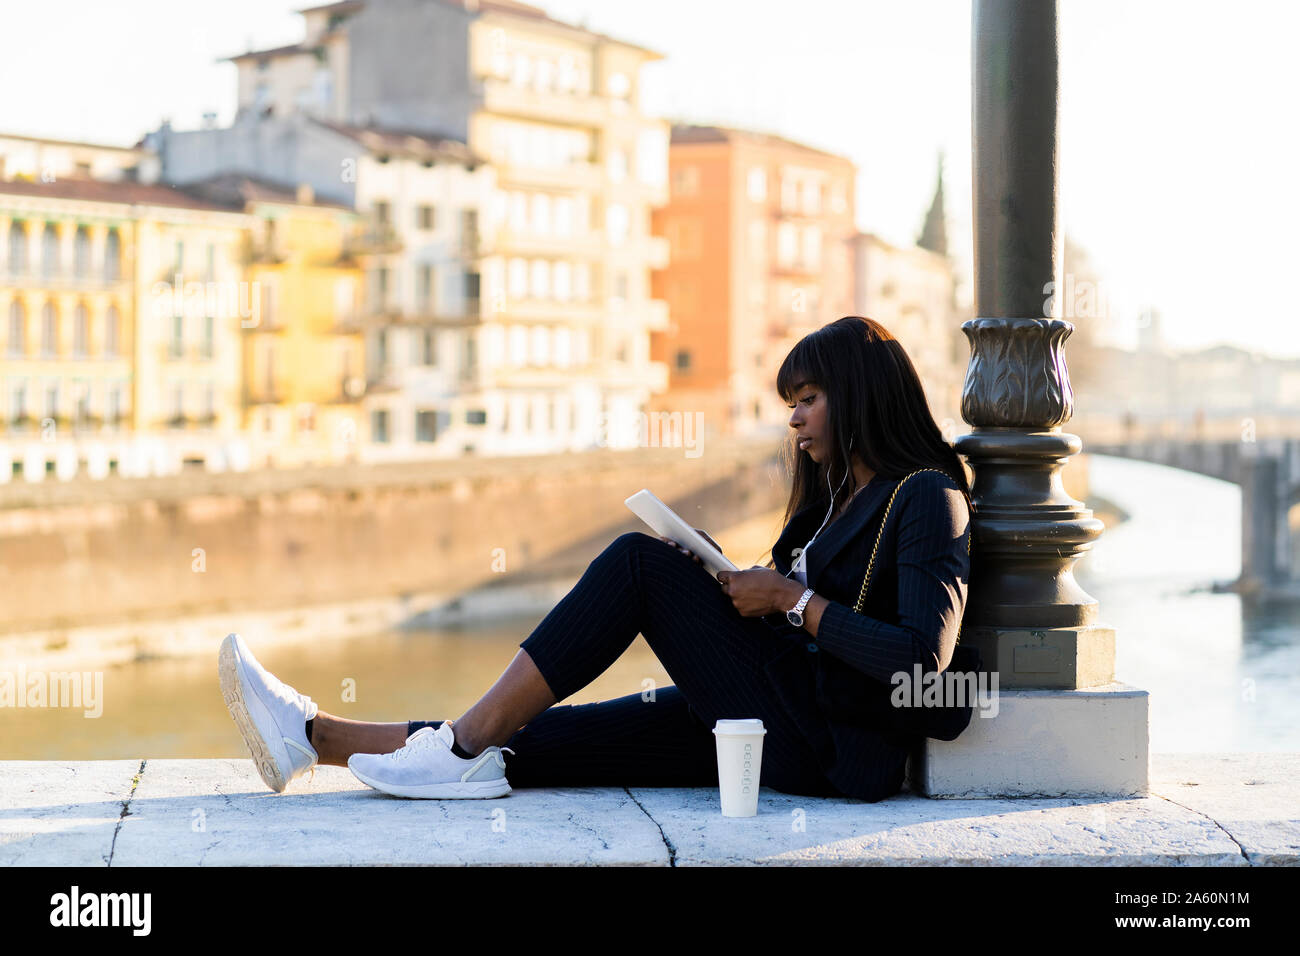 Businesswoman sitting outdoors using a digital tablet Stock Photo